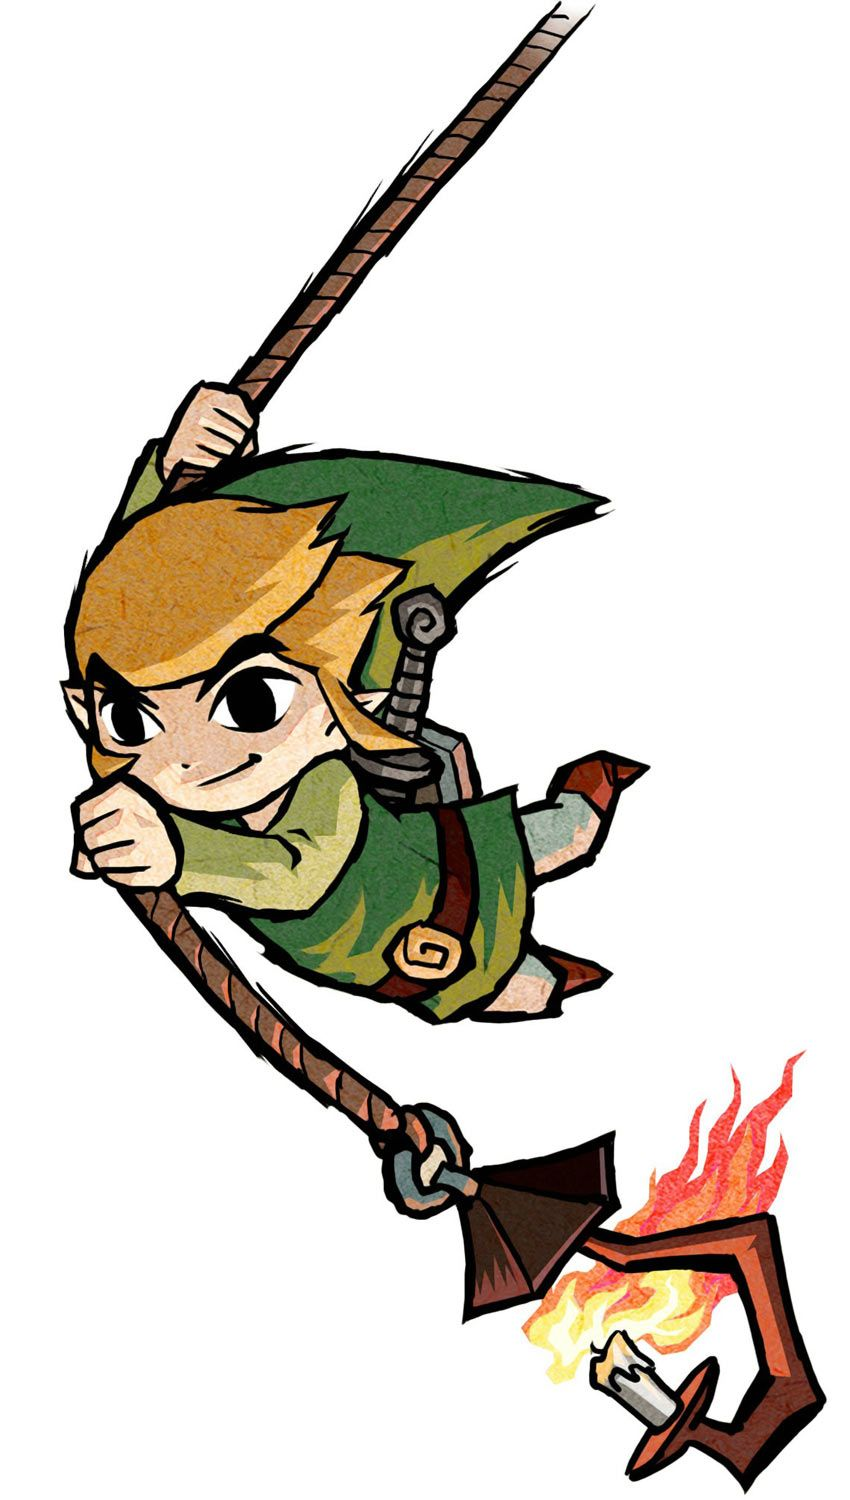 Link Rope Action - The Legend of Zelda: The Wind Waker HD | TLOZ ...